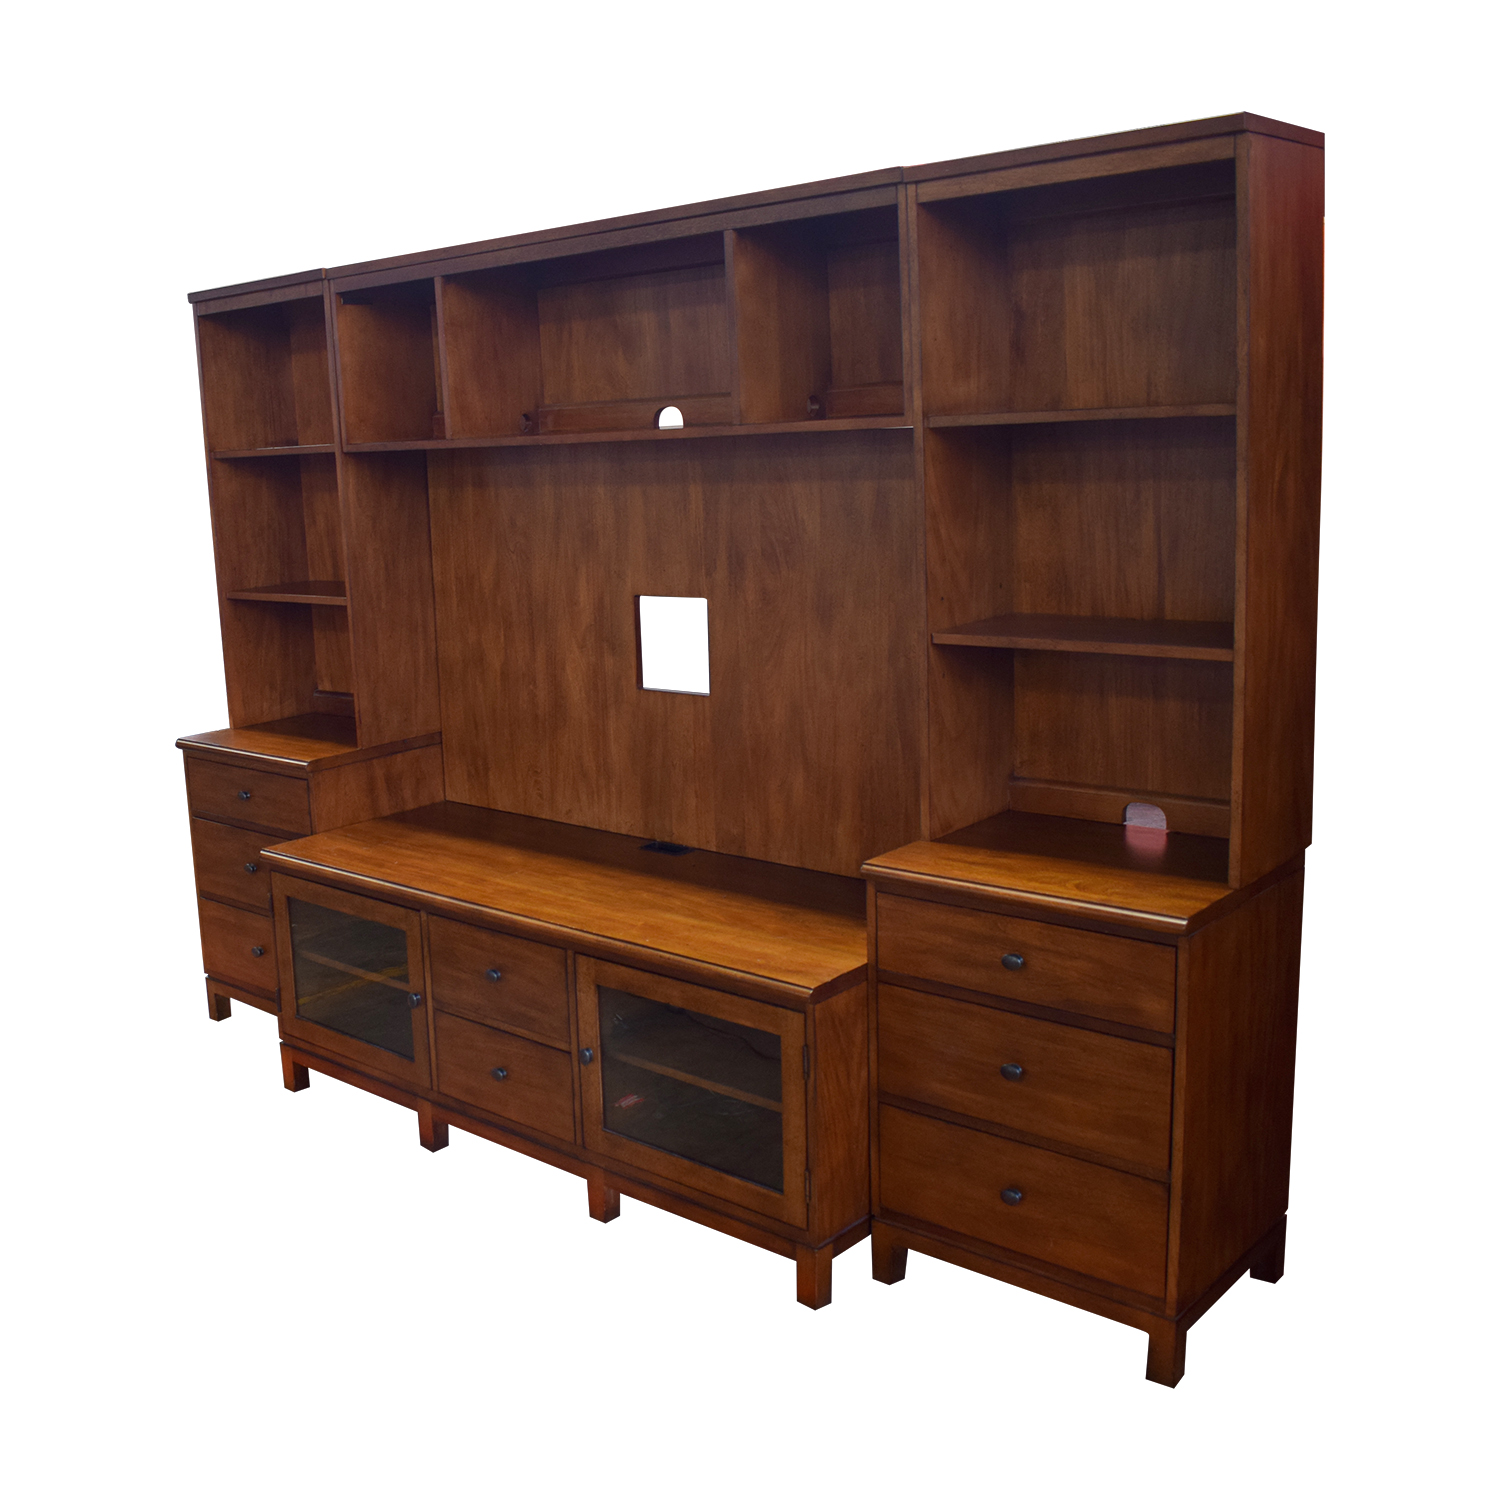 Ethan Allen Ethan Allen Wood Media Center with Drawers and Shelves